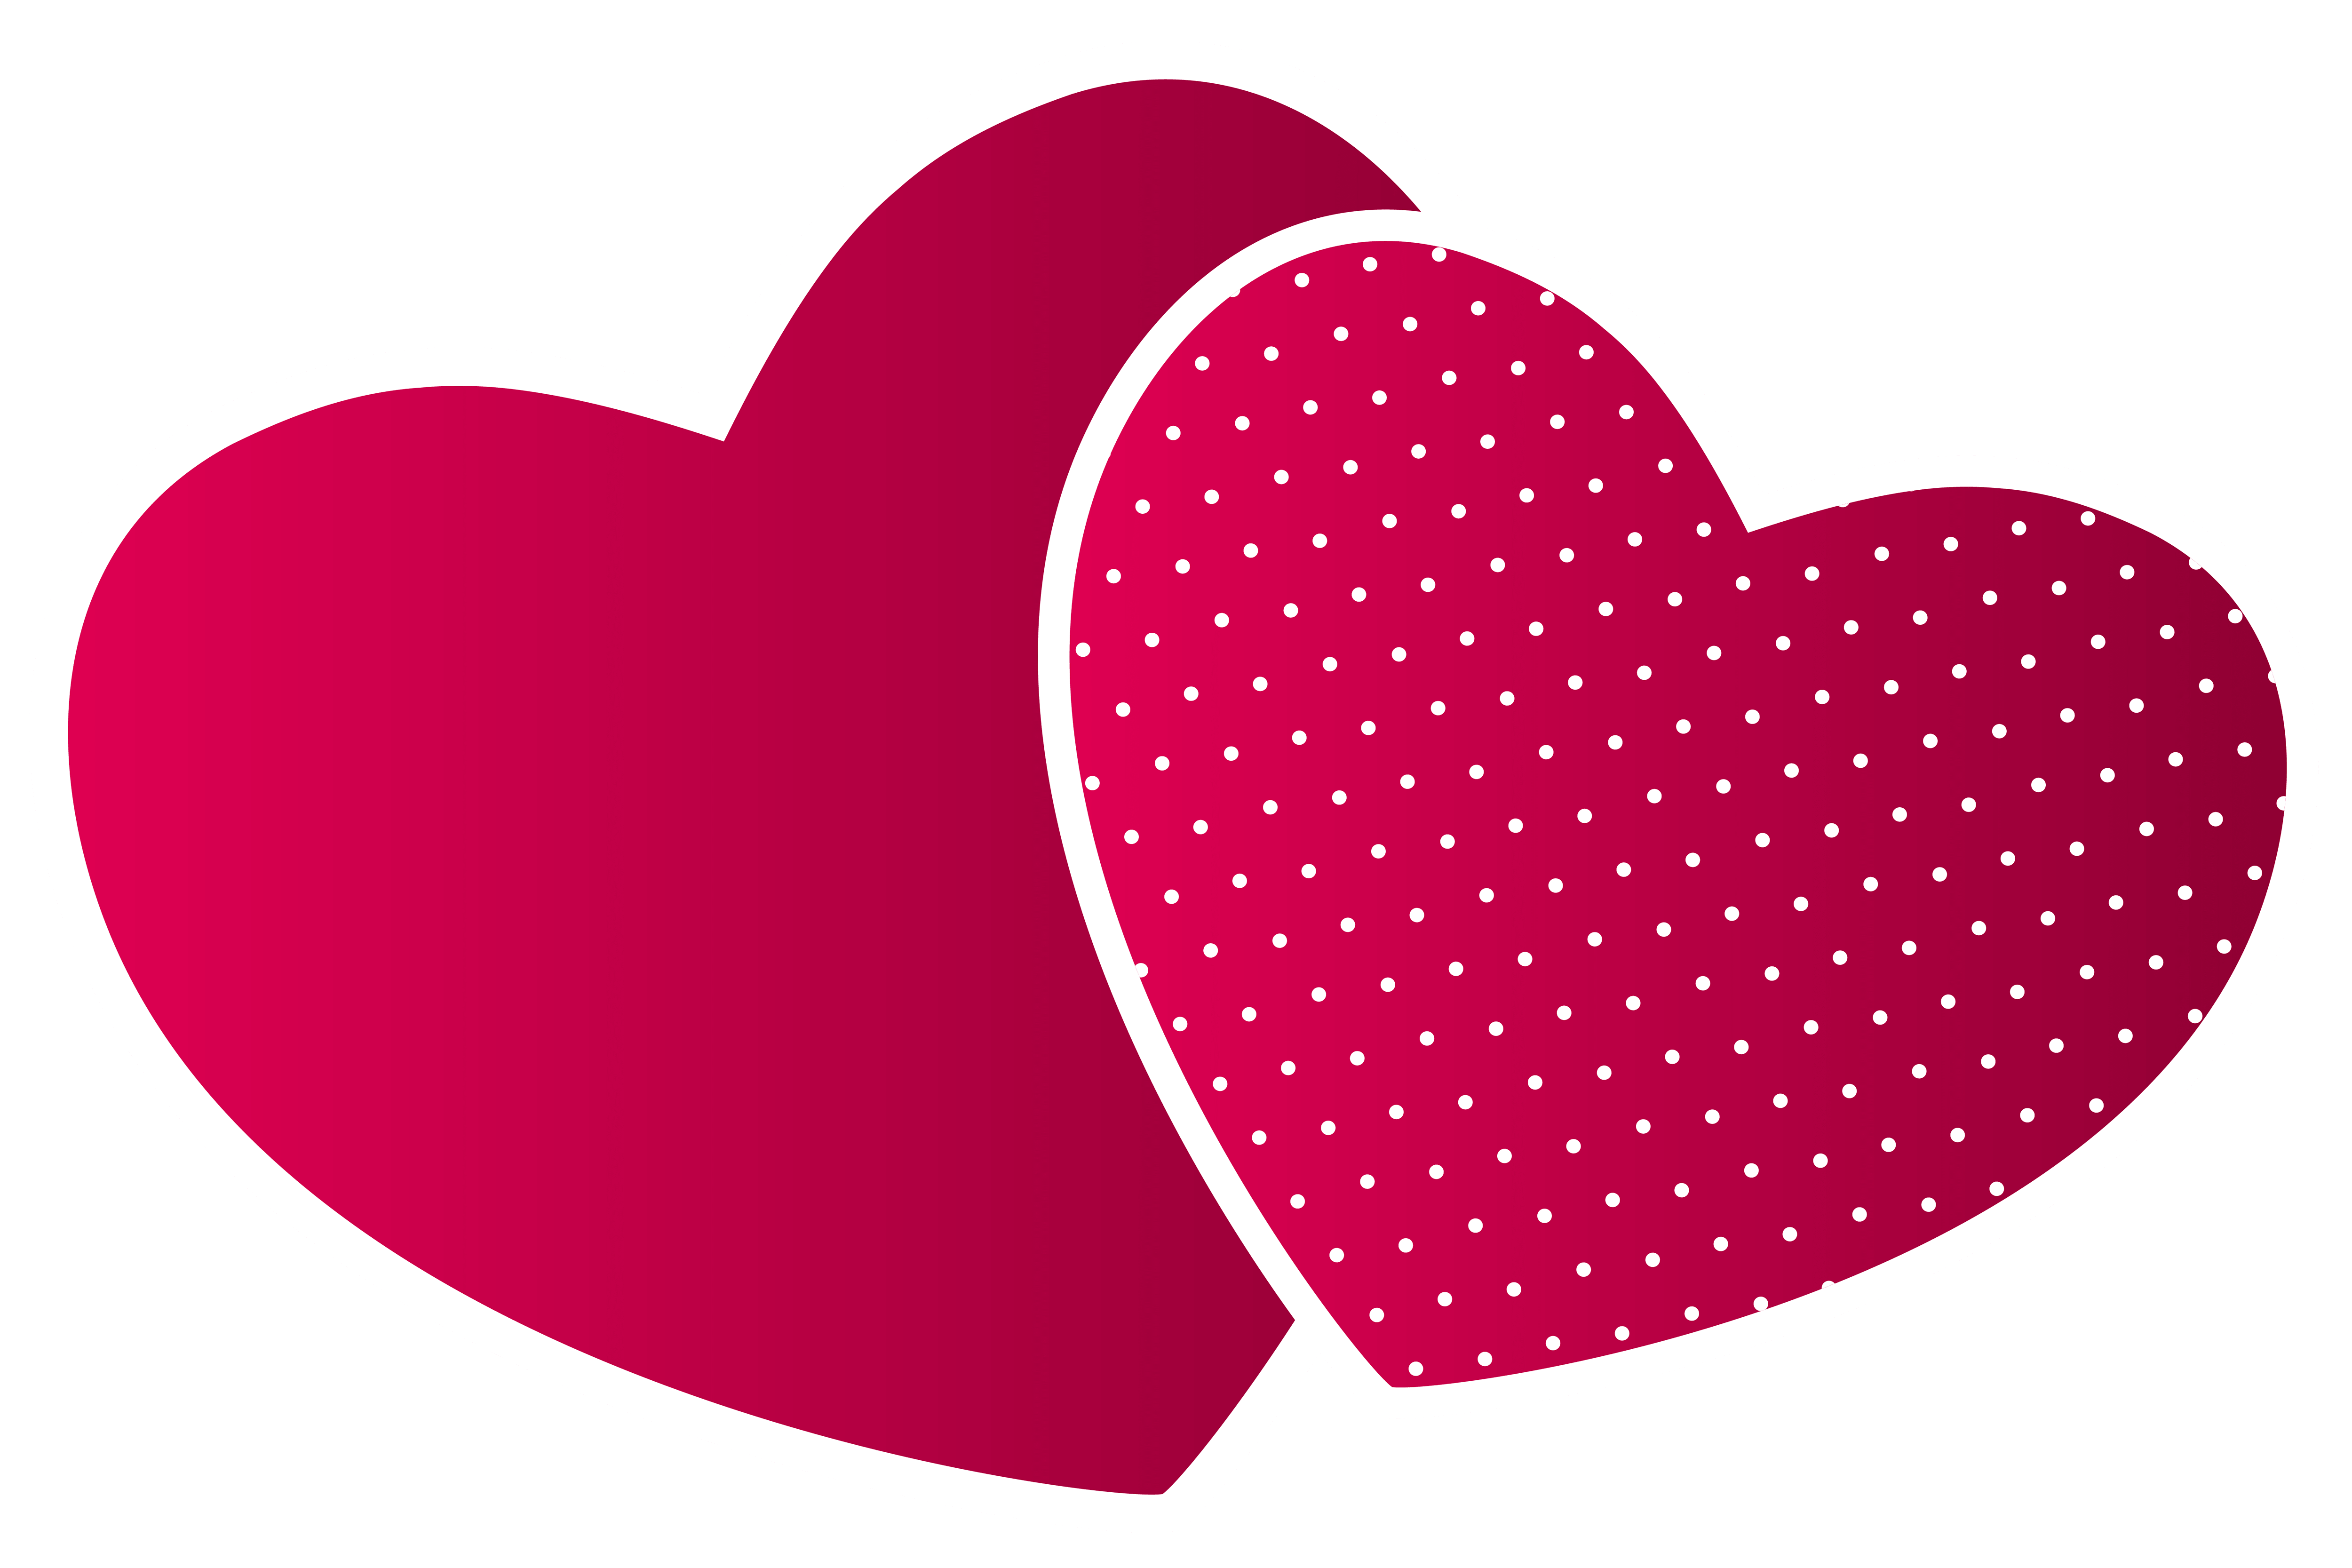 Double hearts PNG clipart